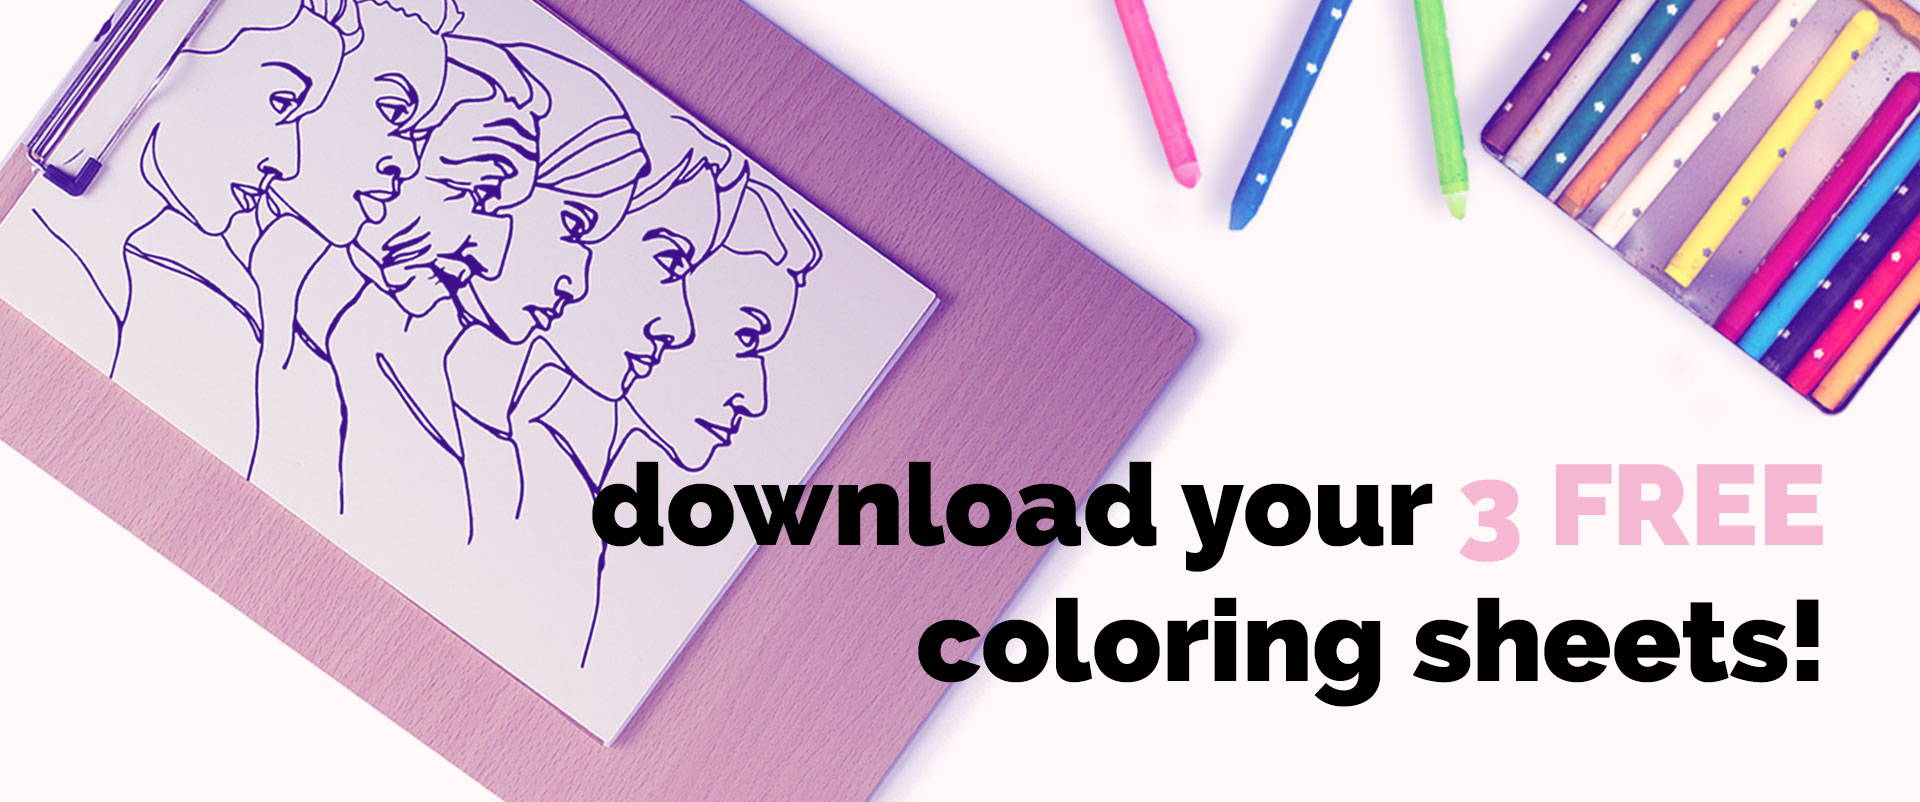 Download you 3 FREE coloring sheets